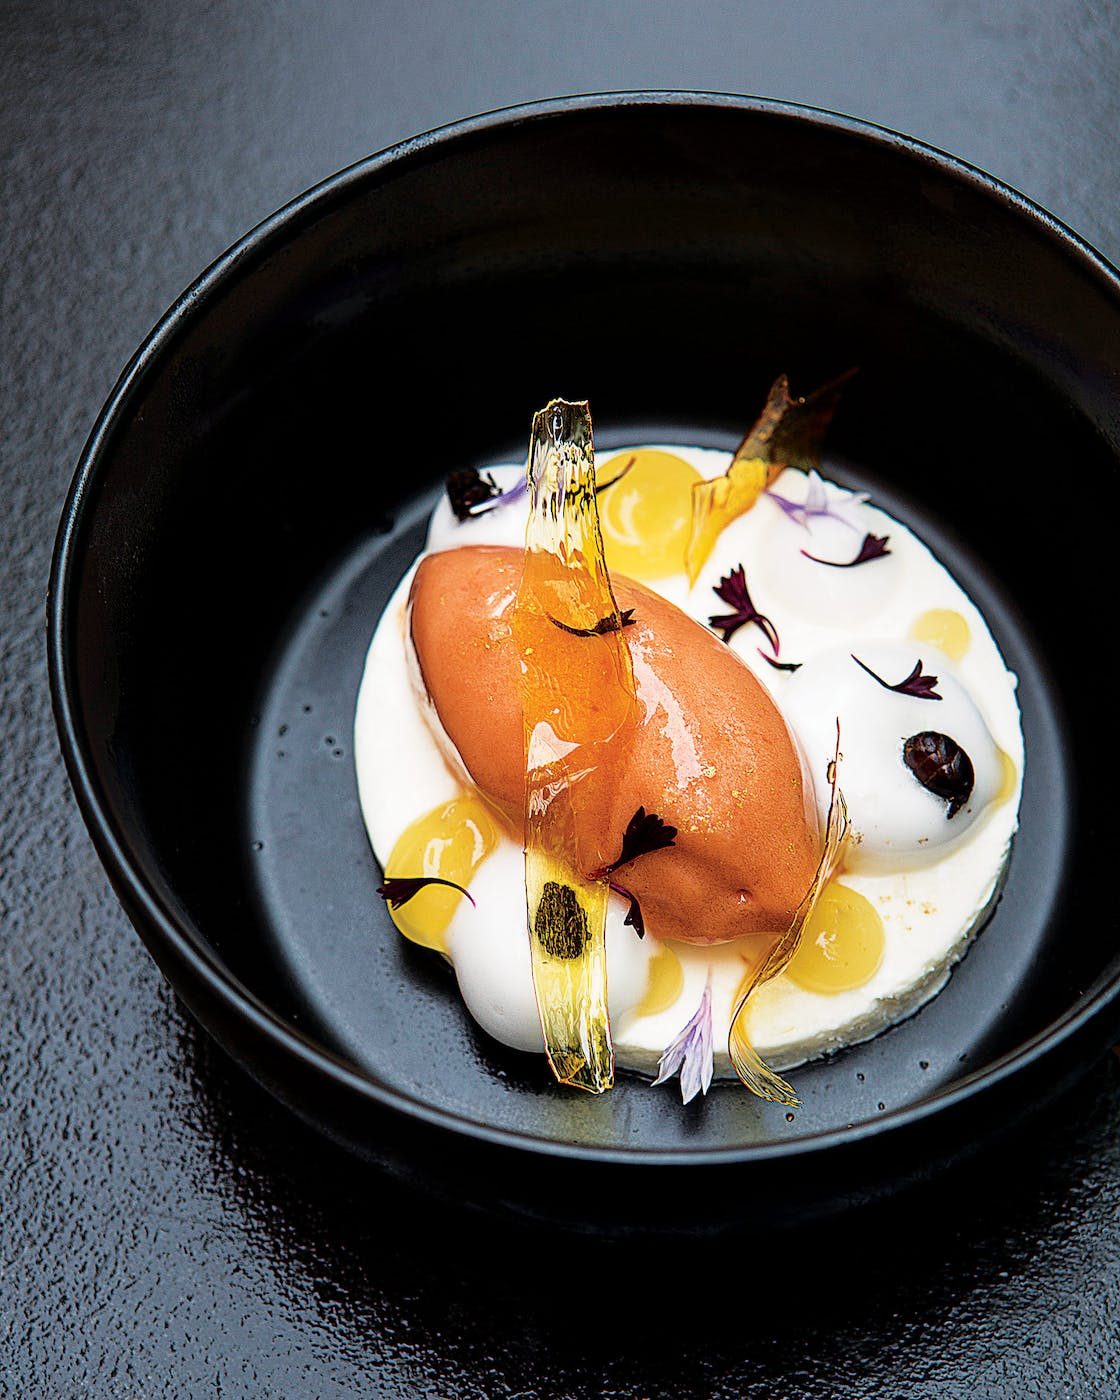 Chamomile mousse with guava sorbet and Oaxacan ants at Comedor.